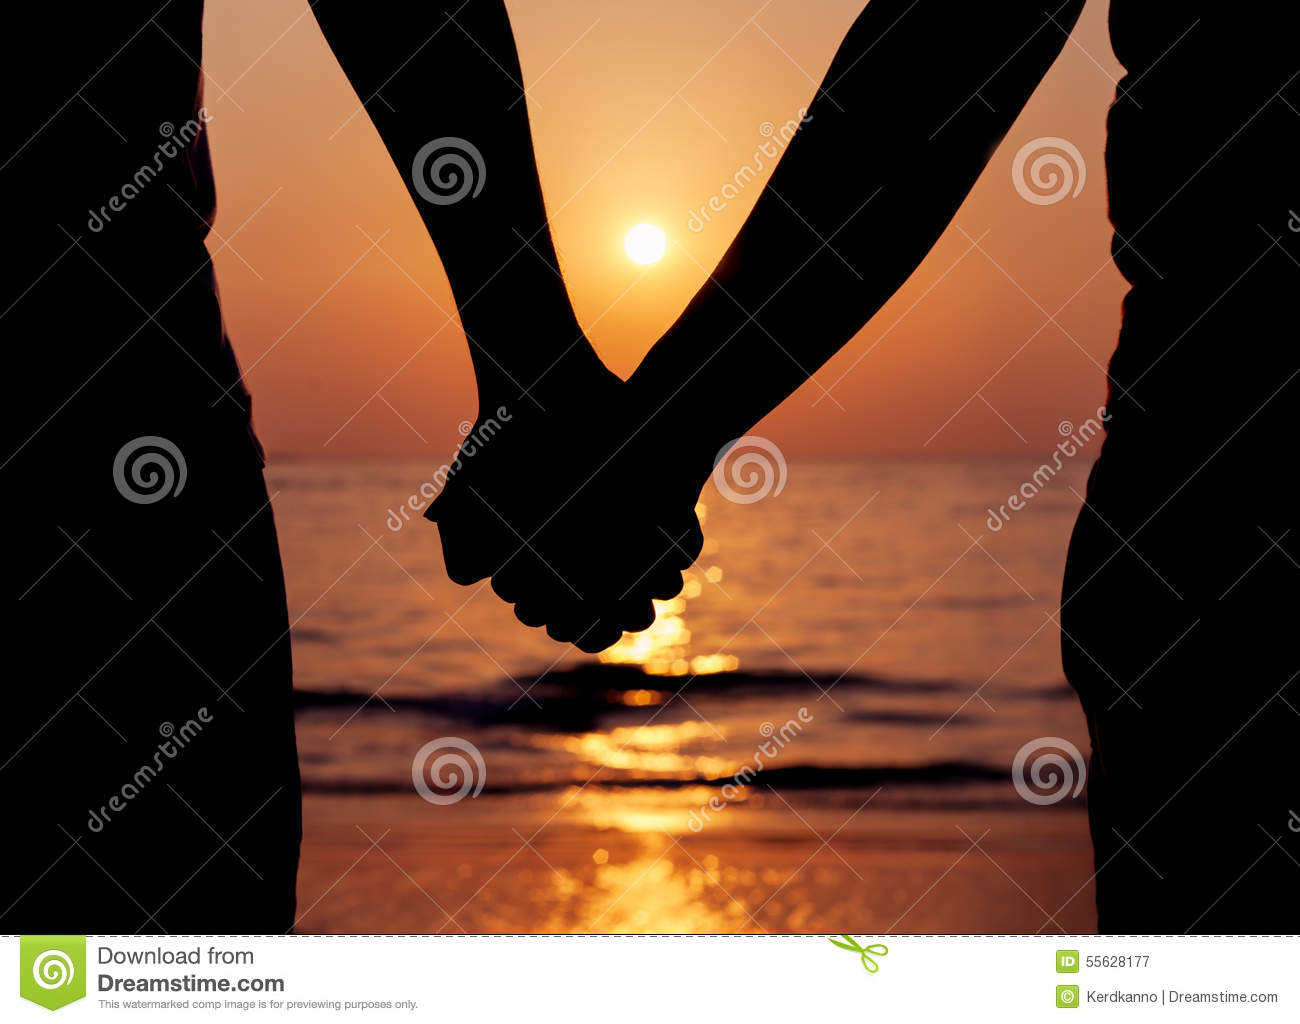 Silhouettes couples holding hands